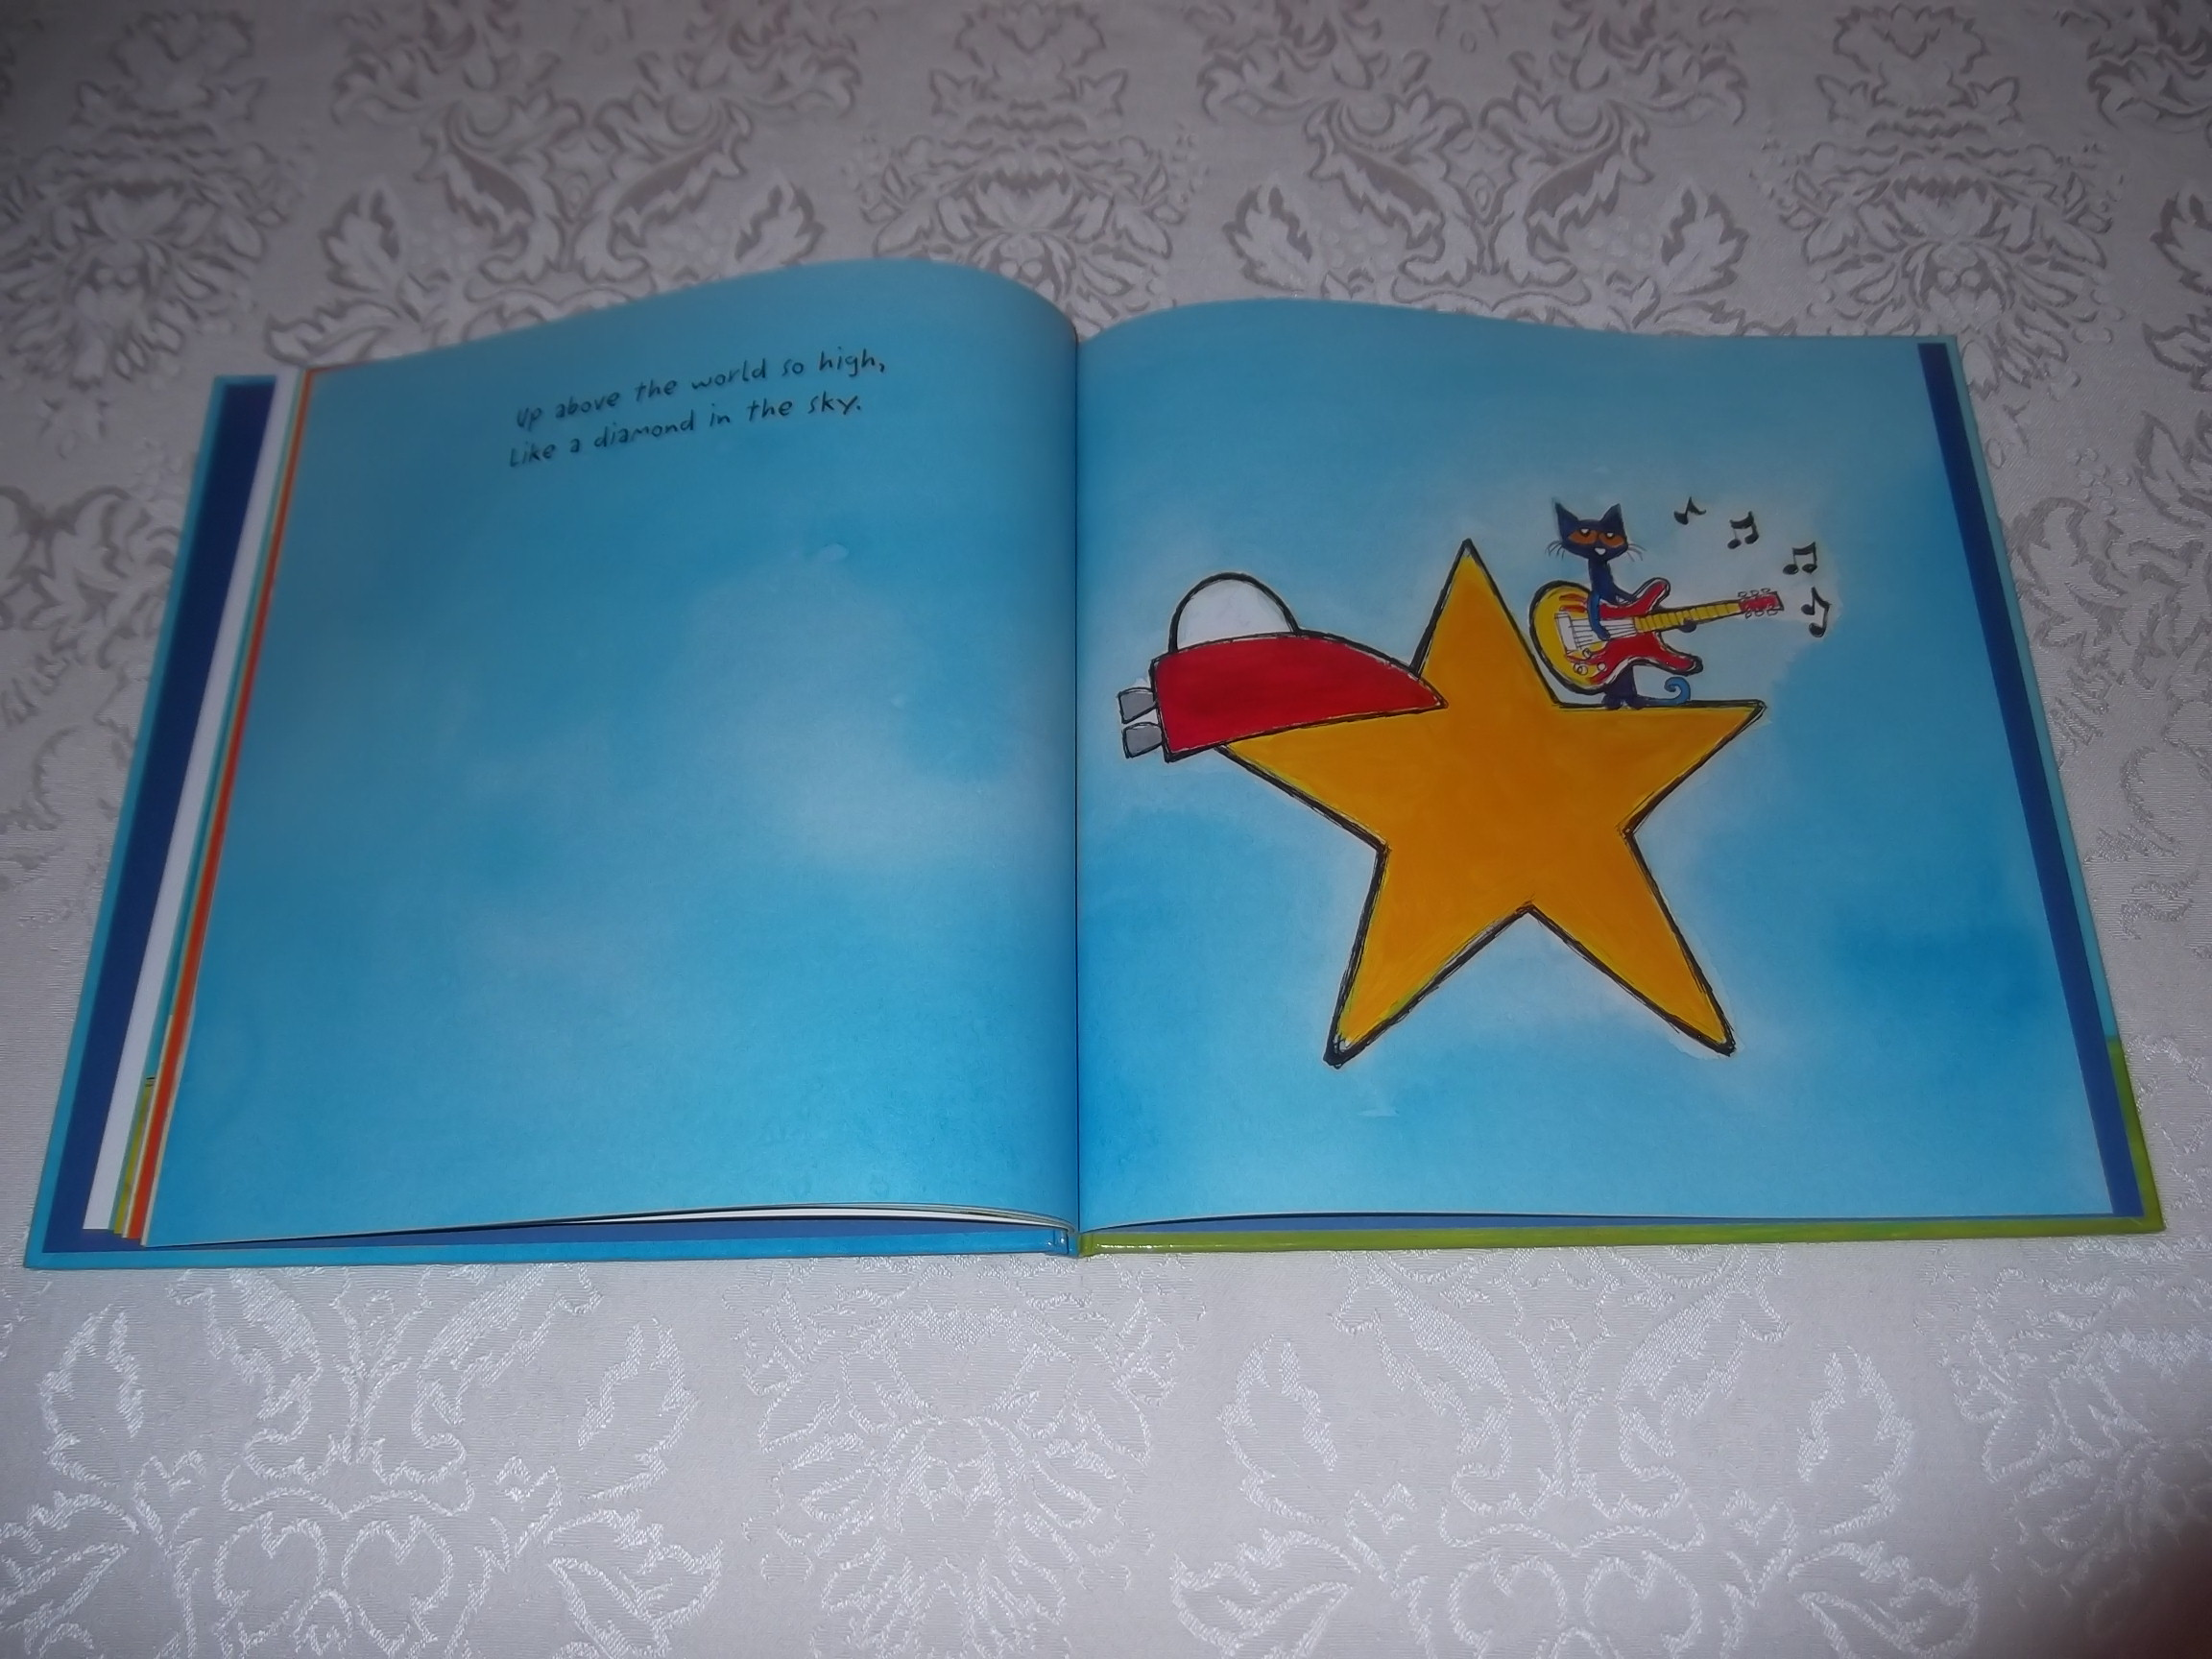 Image 3 of Pete the Cat Twinkle, Twinkle, Little Star James Dean Brand New HC